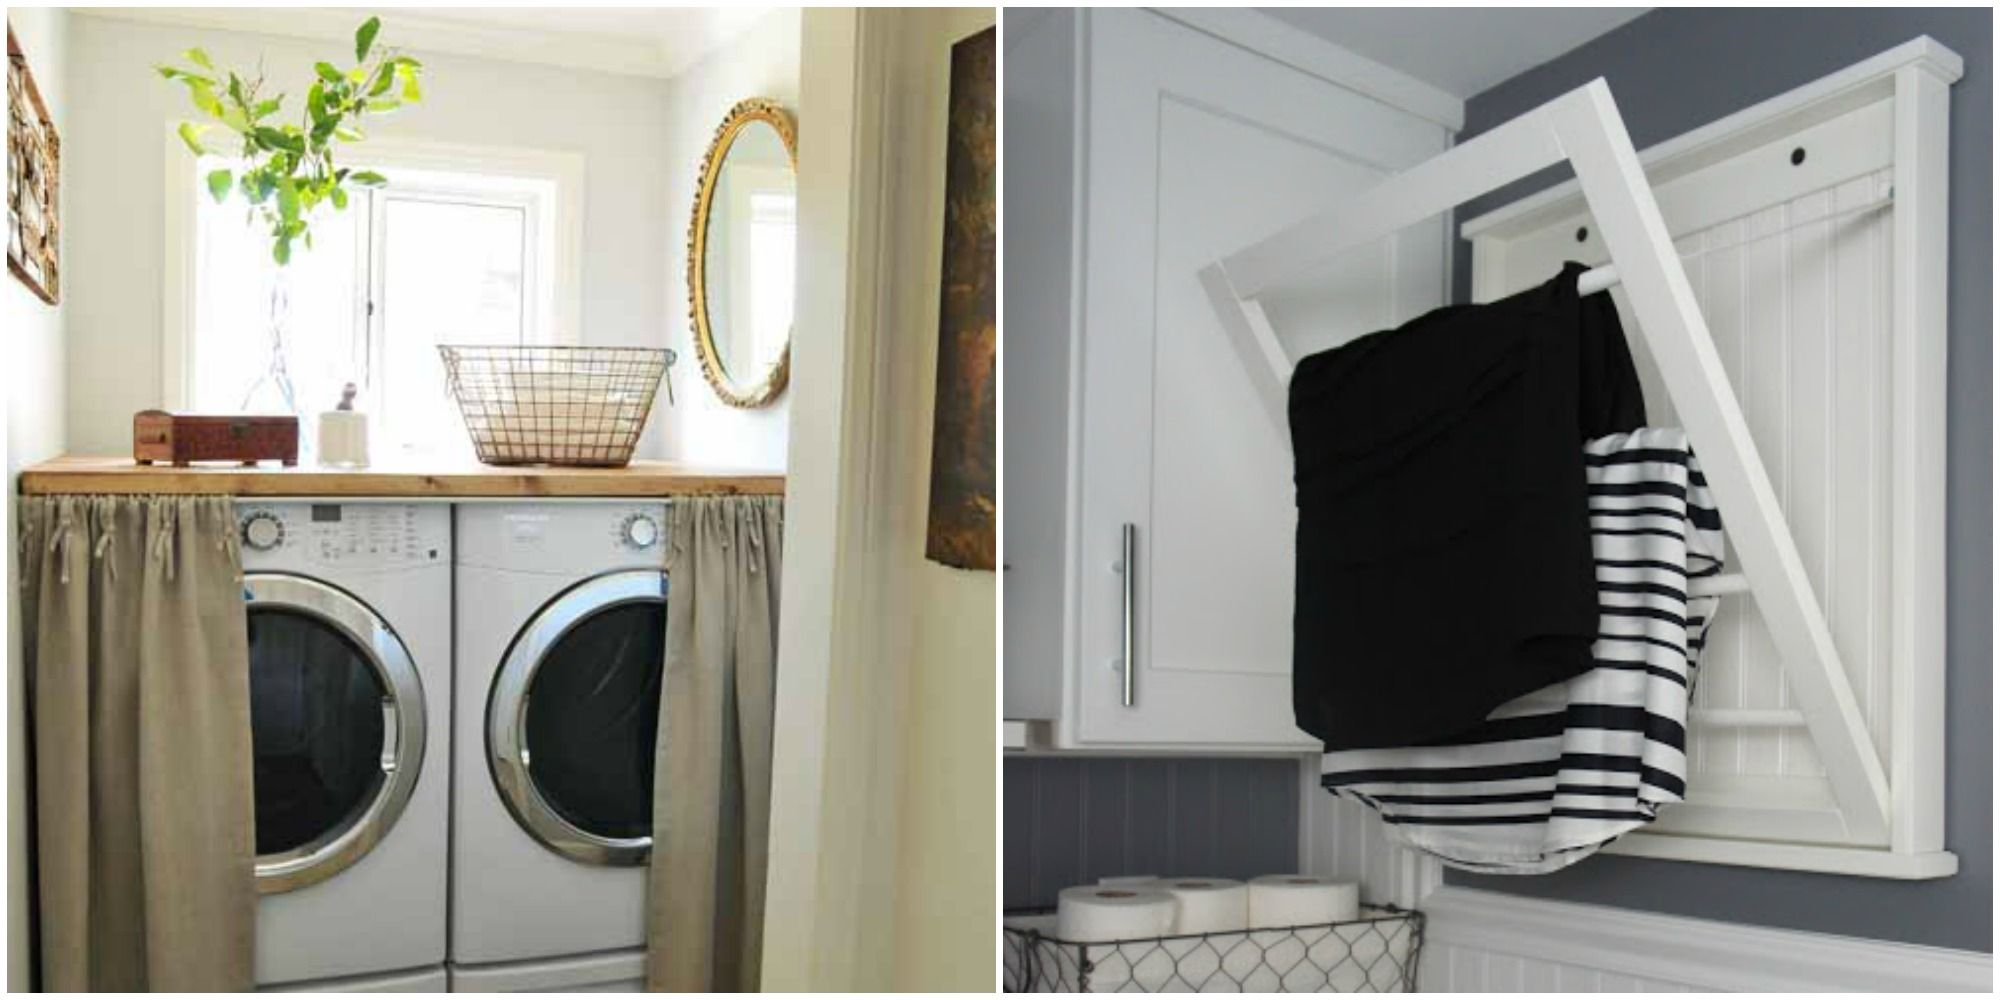 17 Small Laundry Room Organization Ideas - Storage Tips for